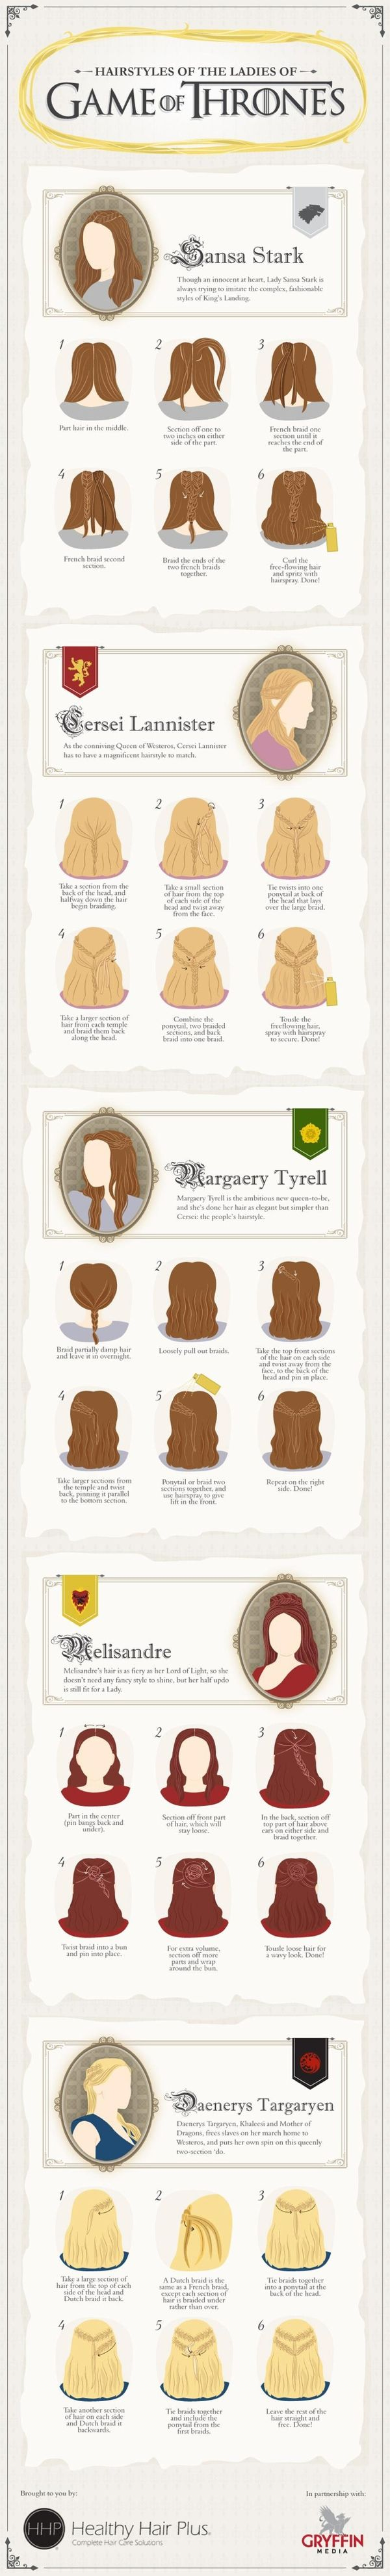 How to braid your hair like the ladies in Game of Thrones... if I had the time skill to do so.